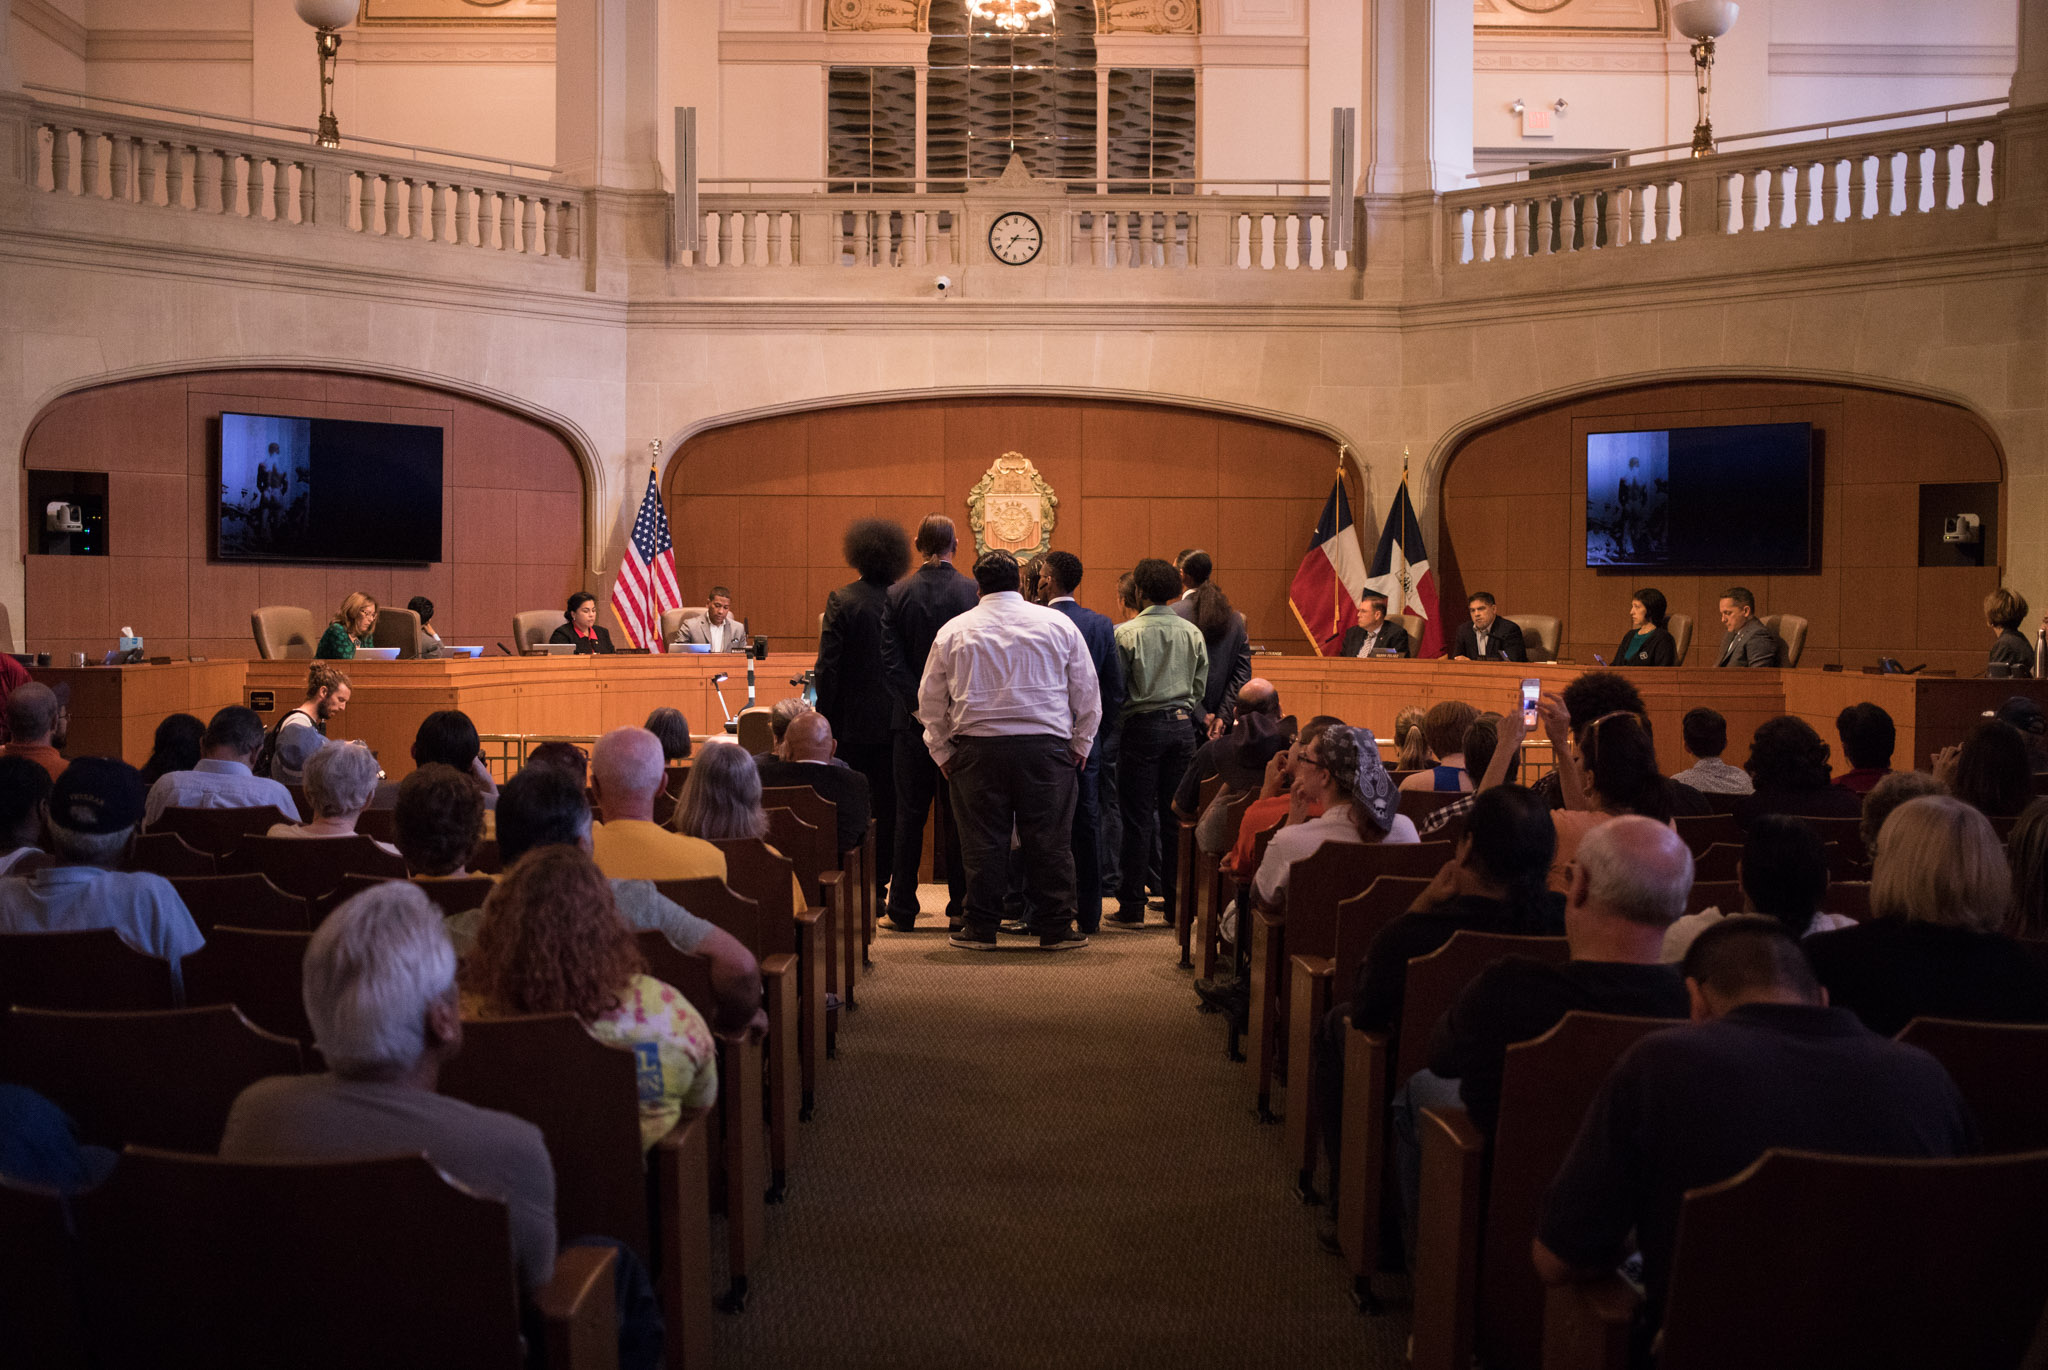 The group Uniting America Through Wisdom speaks at citizens to be heard at Council Chambers in support of the removal of the Confederate monument in Travis Park.